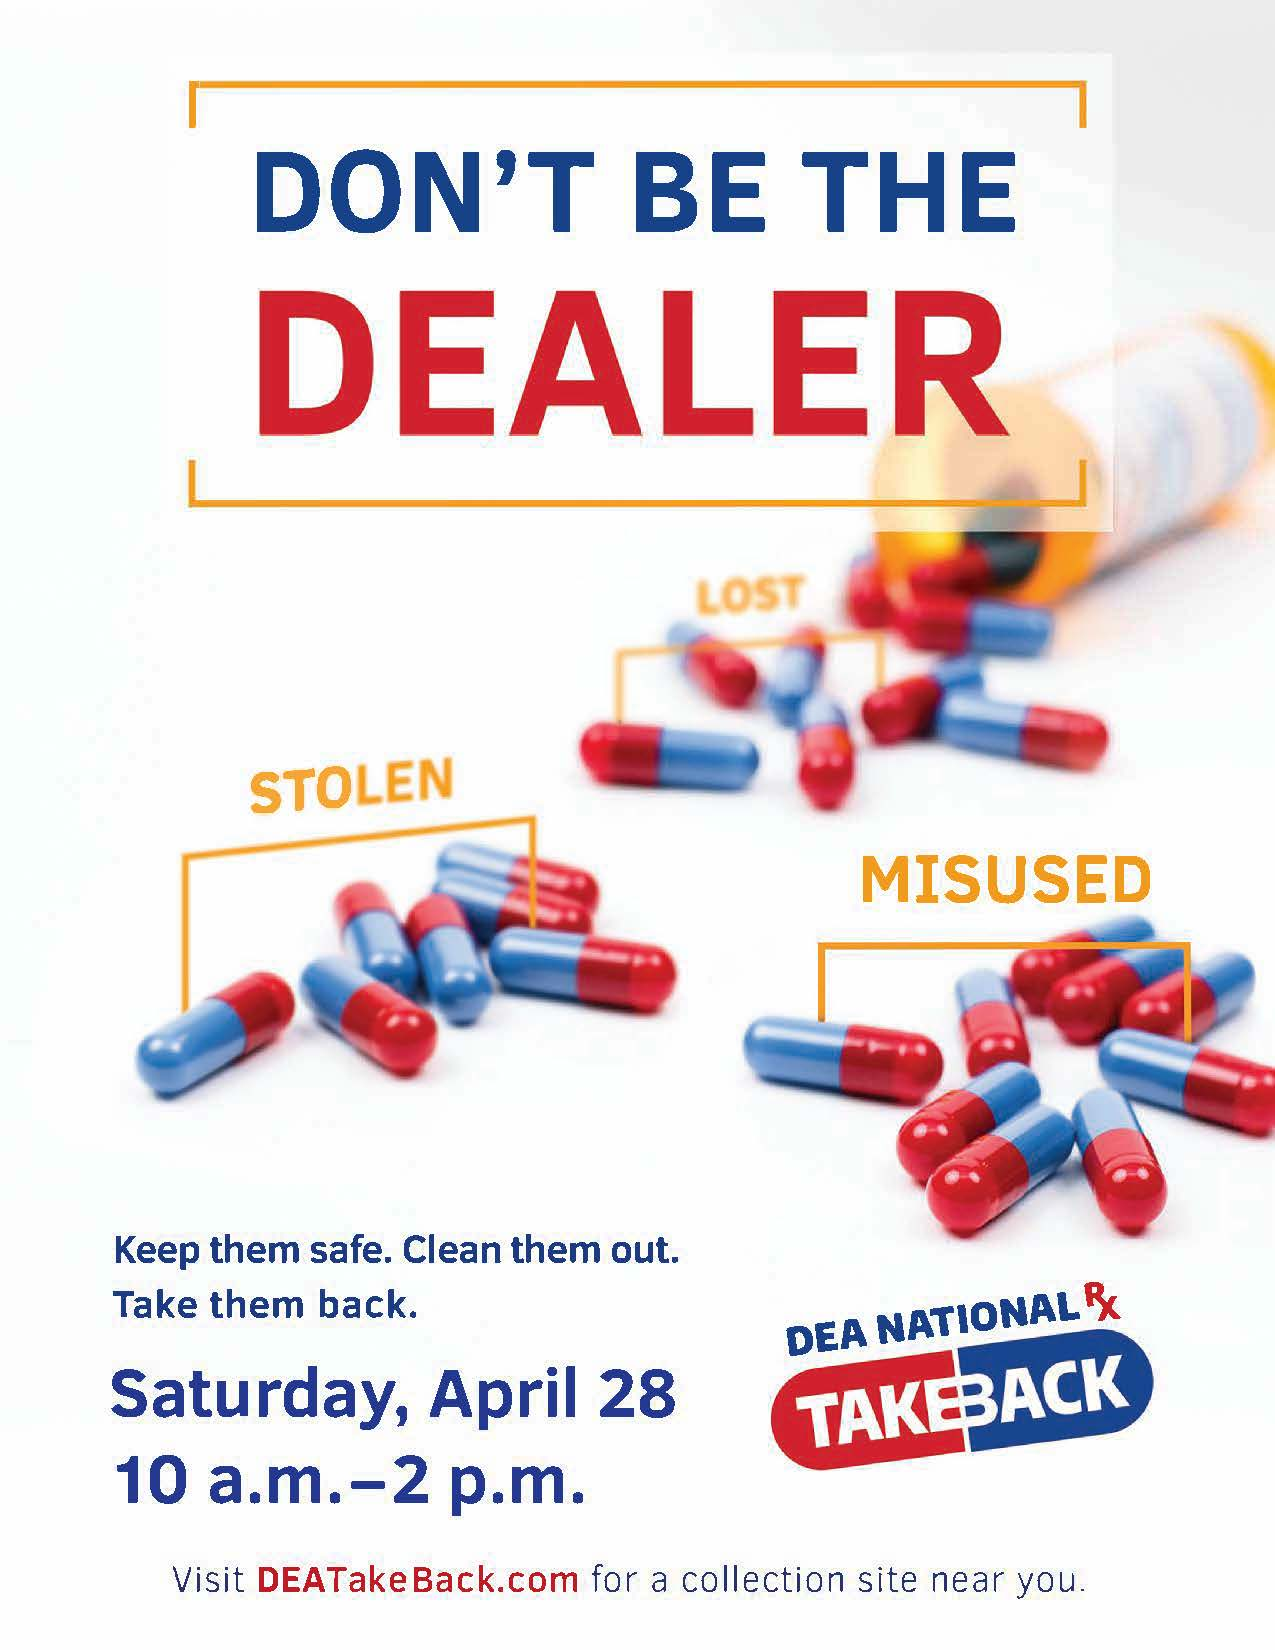 Green River Police Department Is Taking Back Unwanted Prescription Drugs April 28, 2018 At Smith's Food And Drug Store